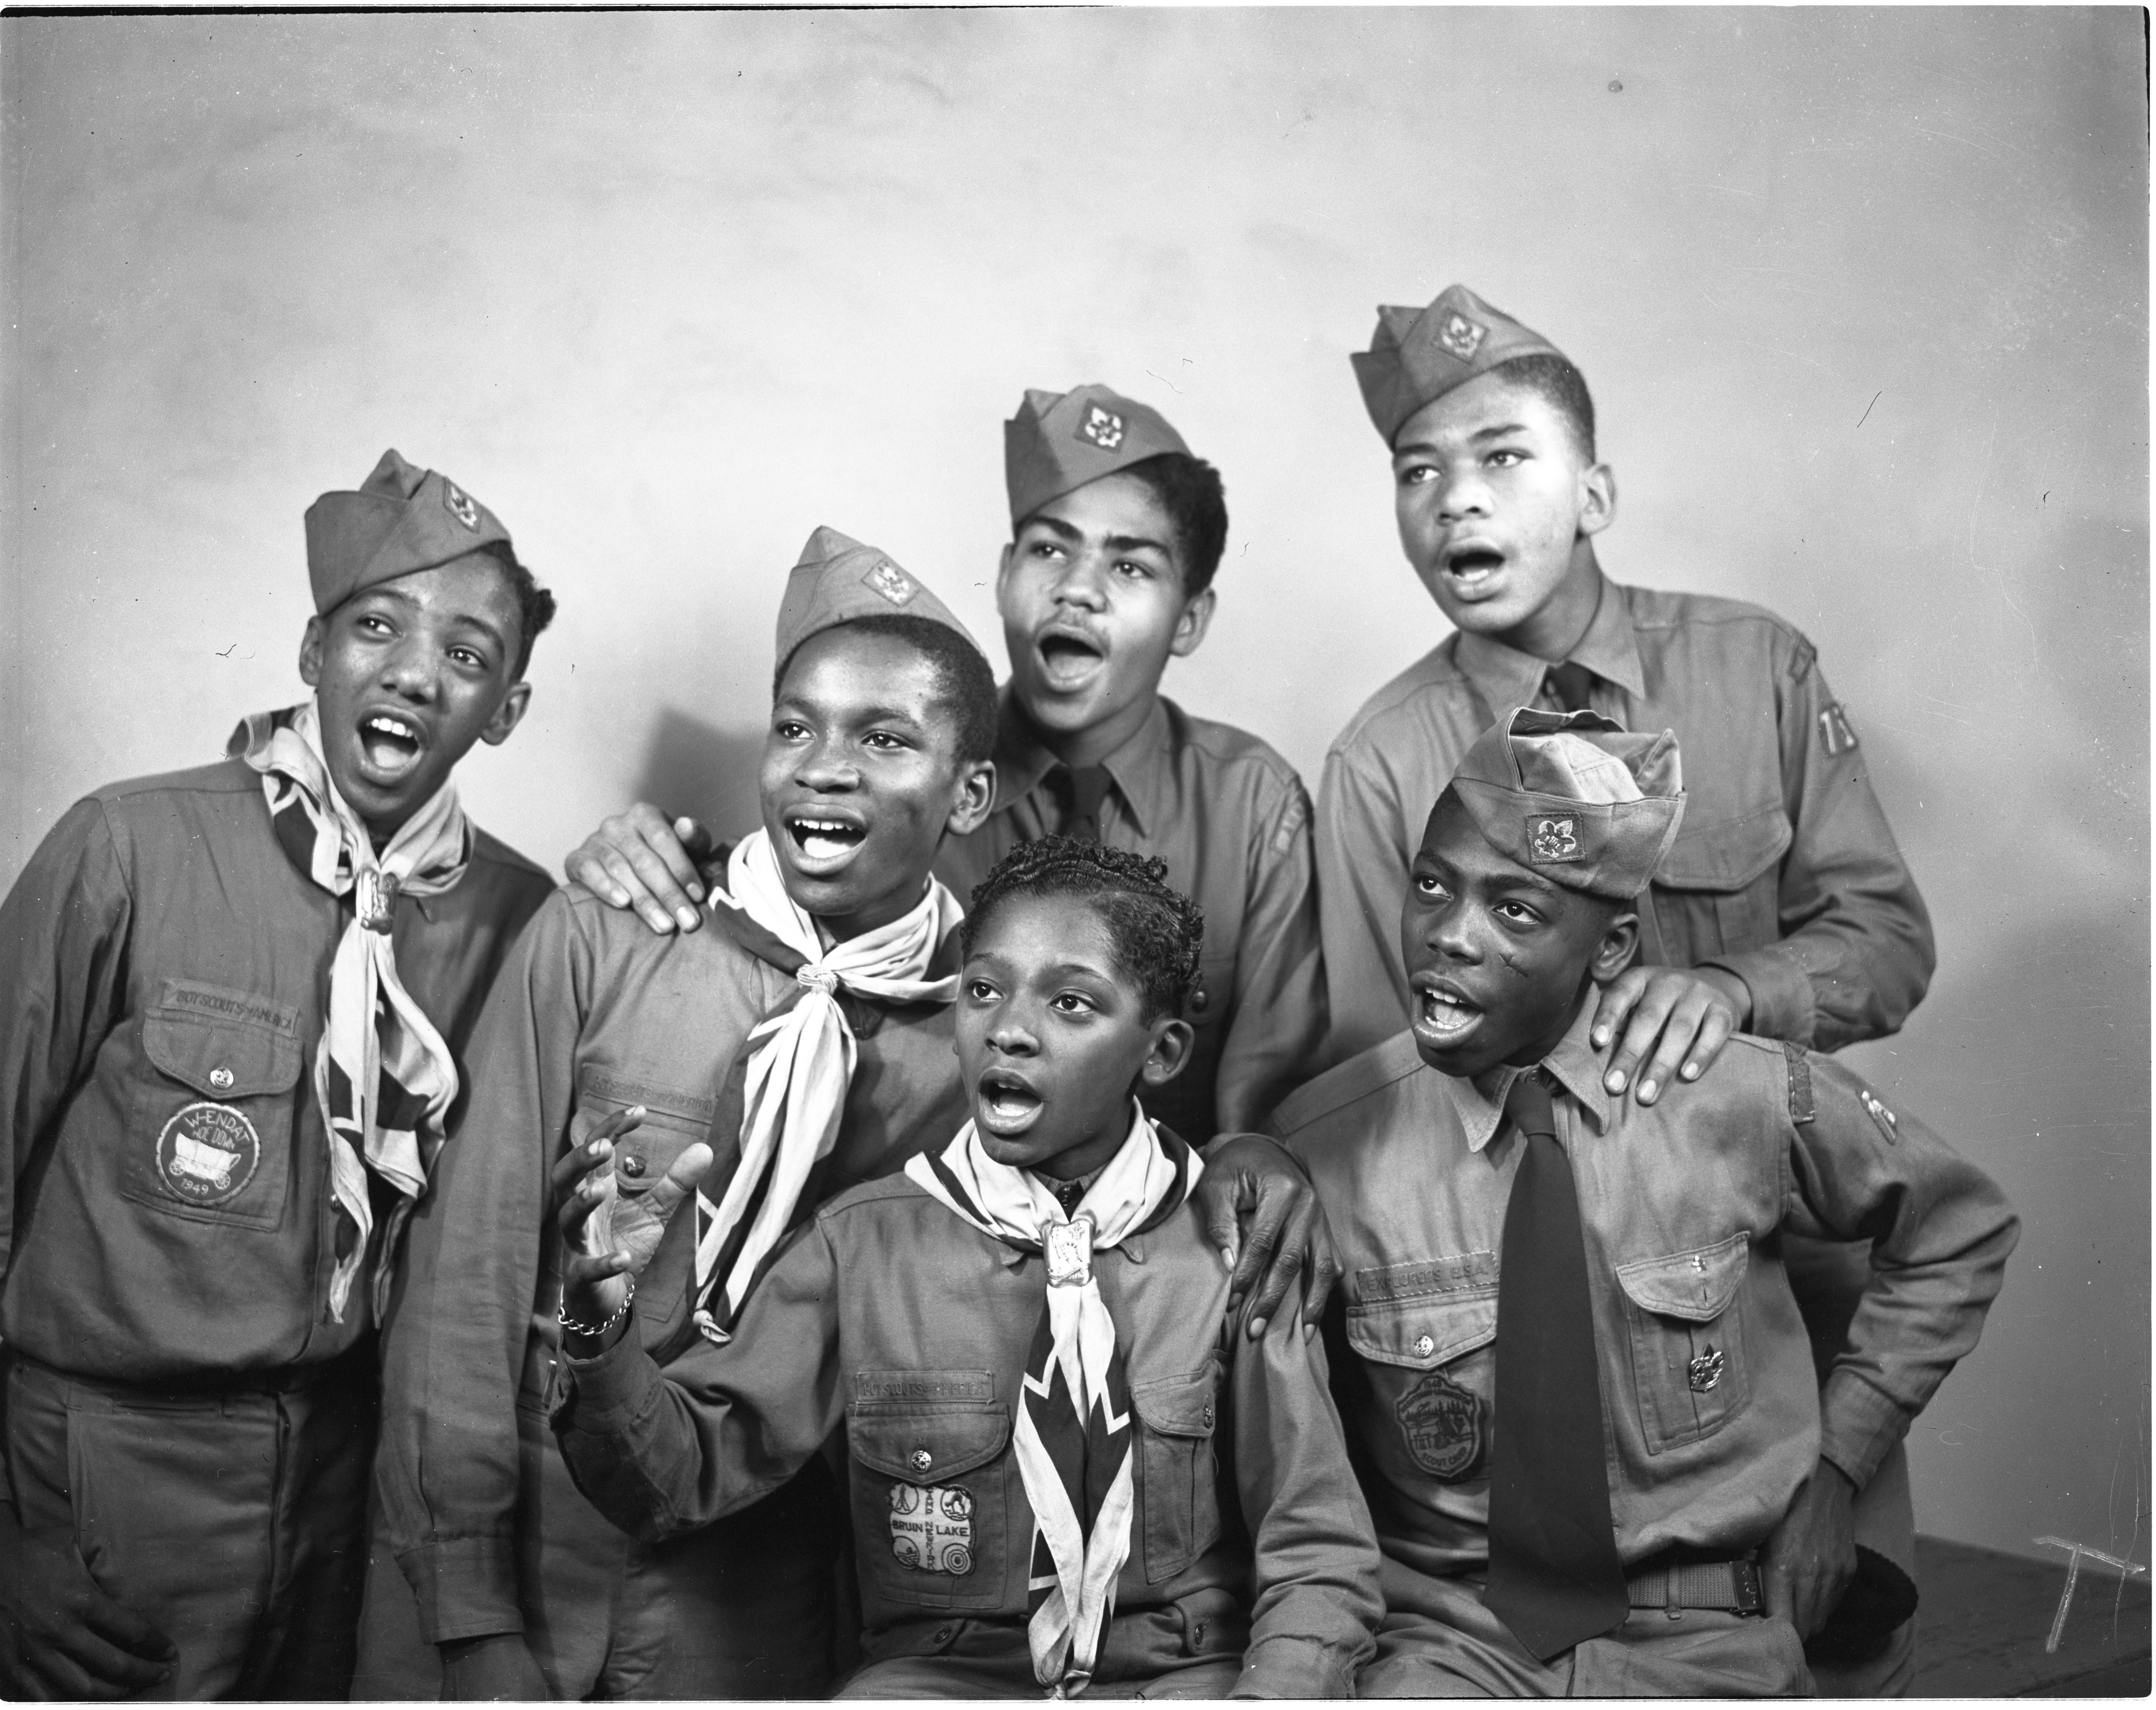 Members Of Boy Scout Troop 75 Form Sextet, 1949 image